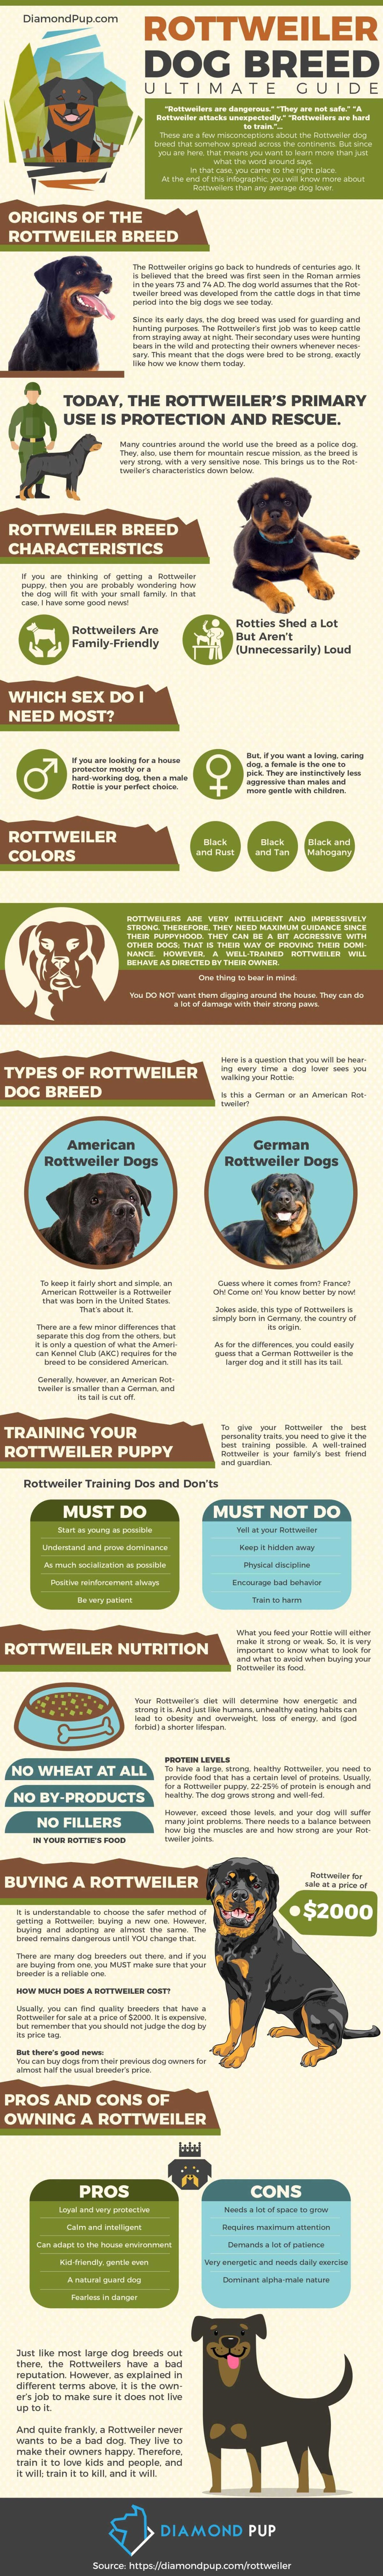 The Dog Lovers Guide on Rottweiler Care - Infographic